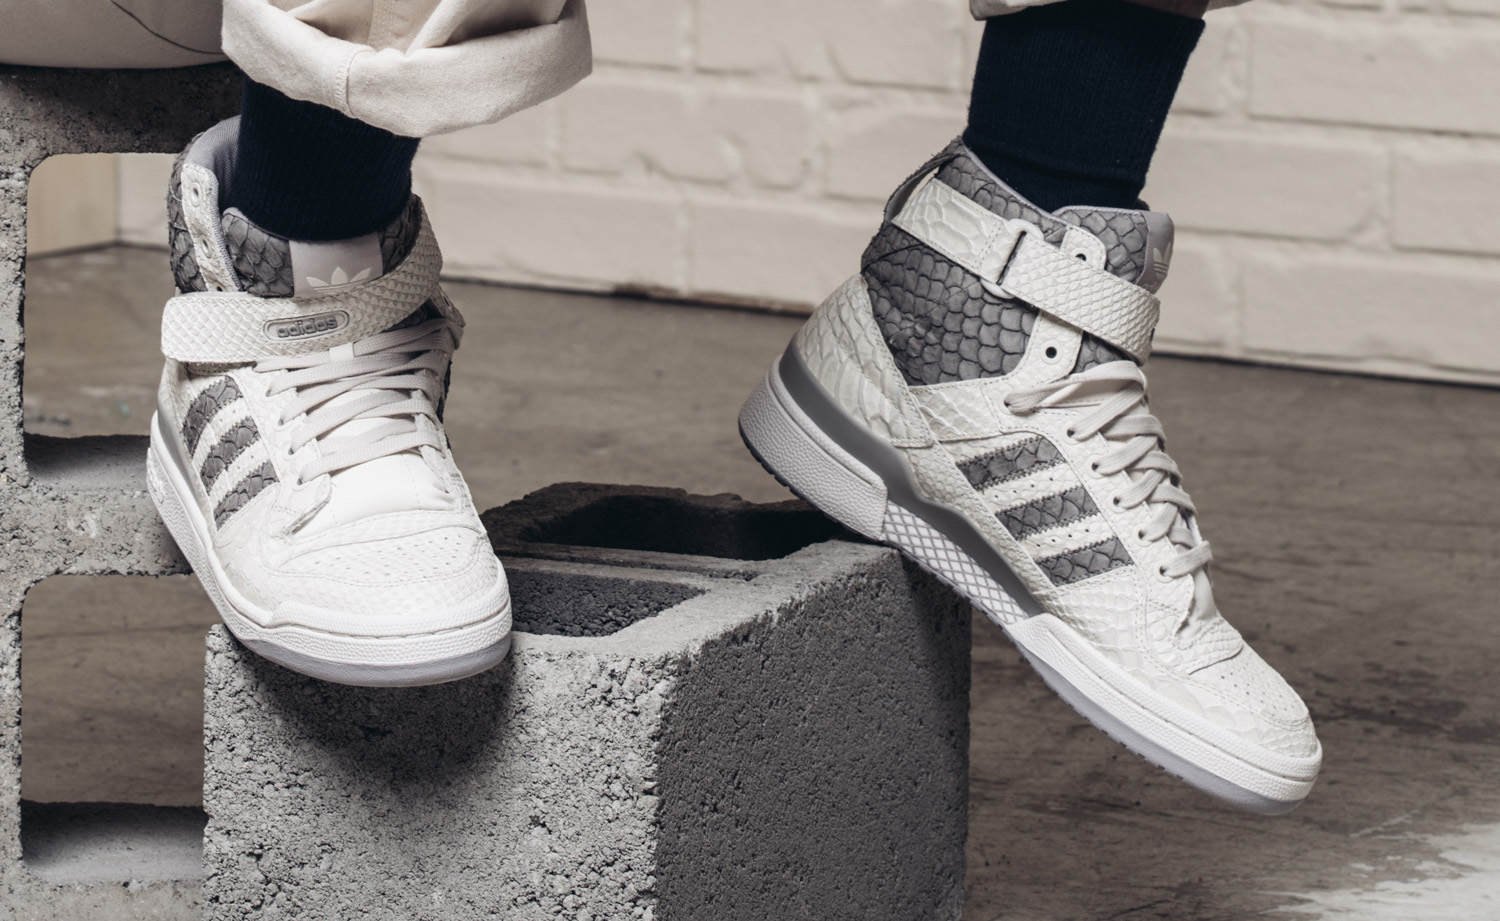 The folks at adidas continue their streak of releasing quality product that is winning the consumers over more and more. Looking to dig in the vault the ...